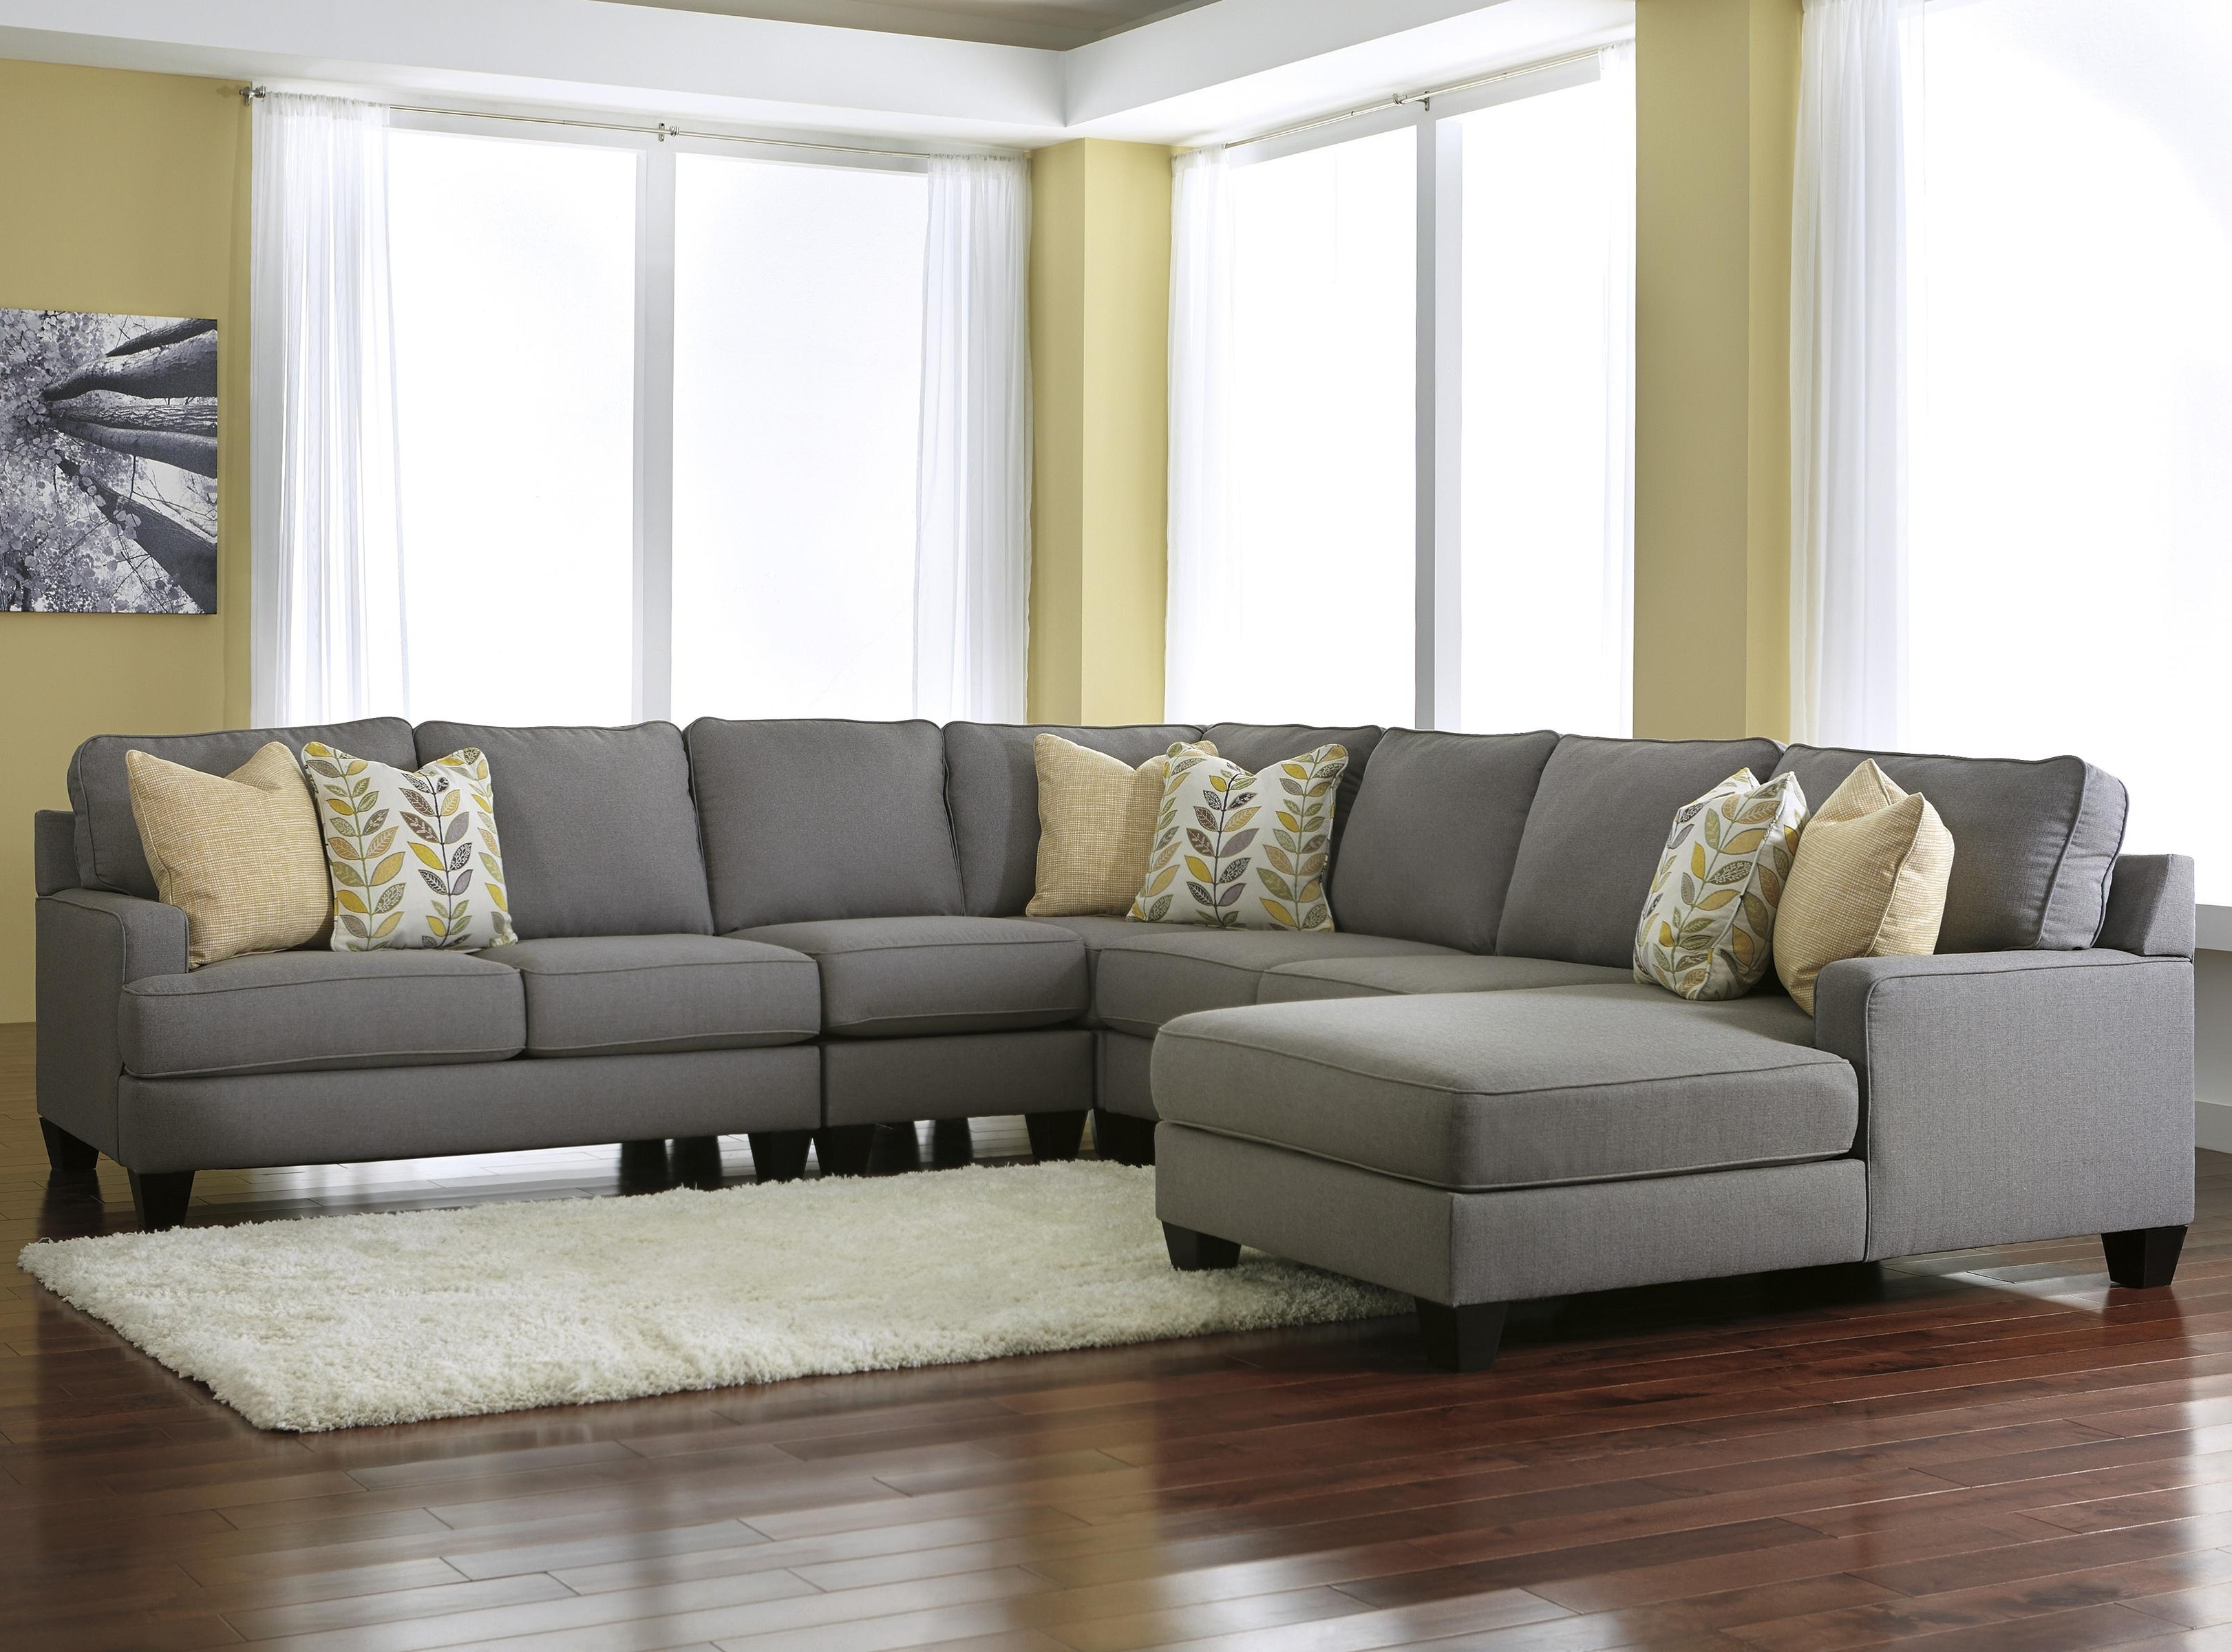 Popular Signature Designashley Chamberly – Alloy Modern 5 Piece With Hattiesburg Ms Sectional Sofas (View 10 of 20)